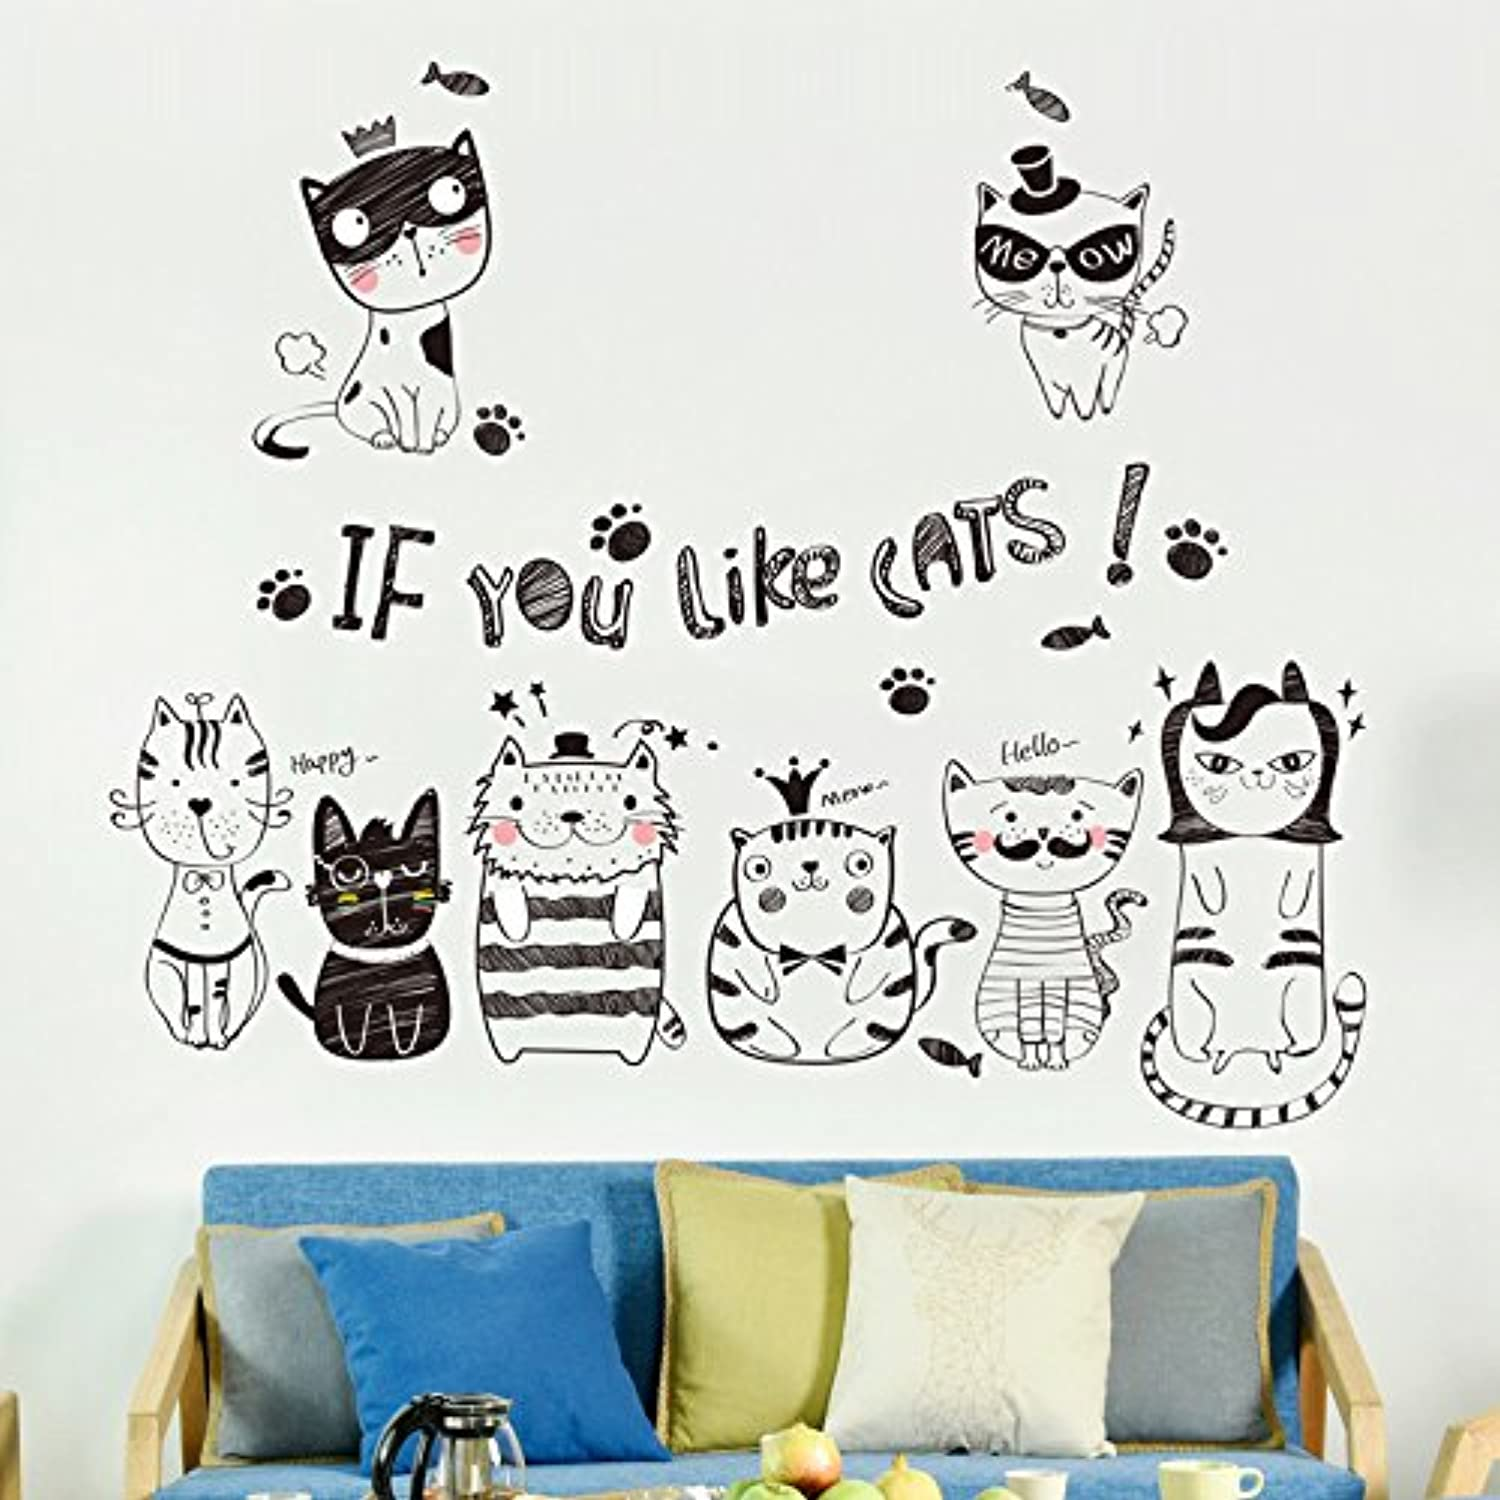 Znzbzt Creative Bedroom Living Room Wall Posters self Adhesive Wall Stickers Wall Decals, Cat